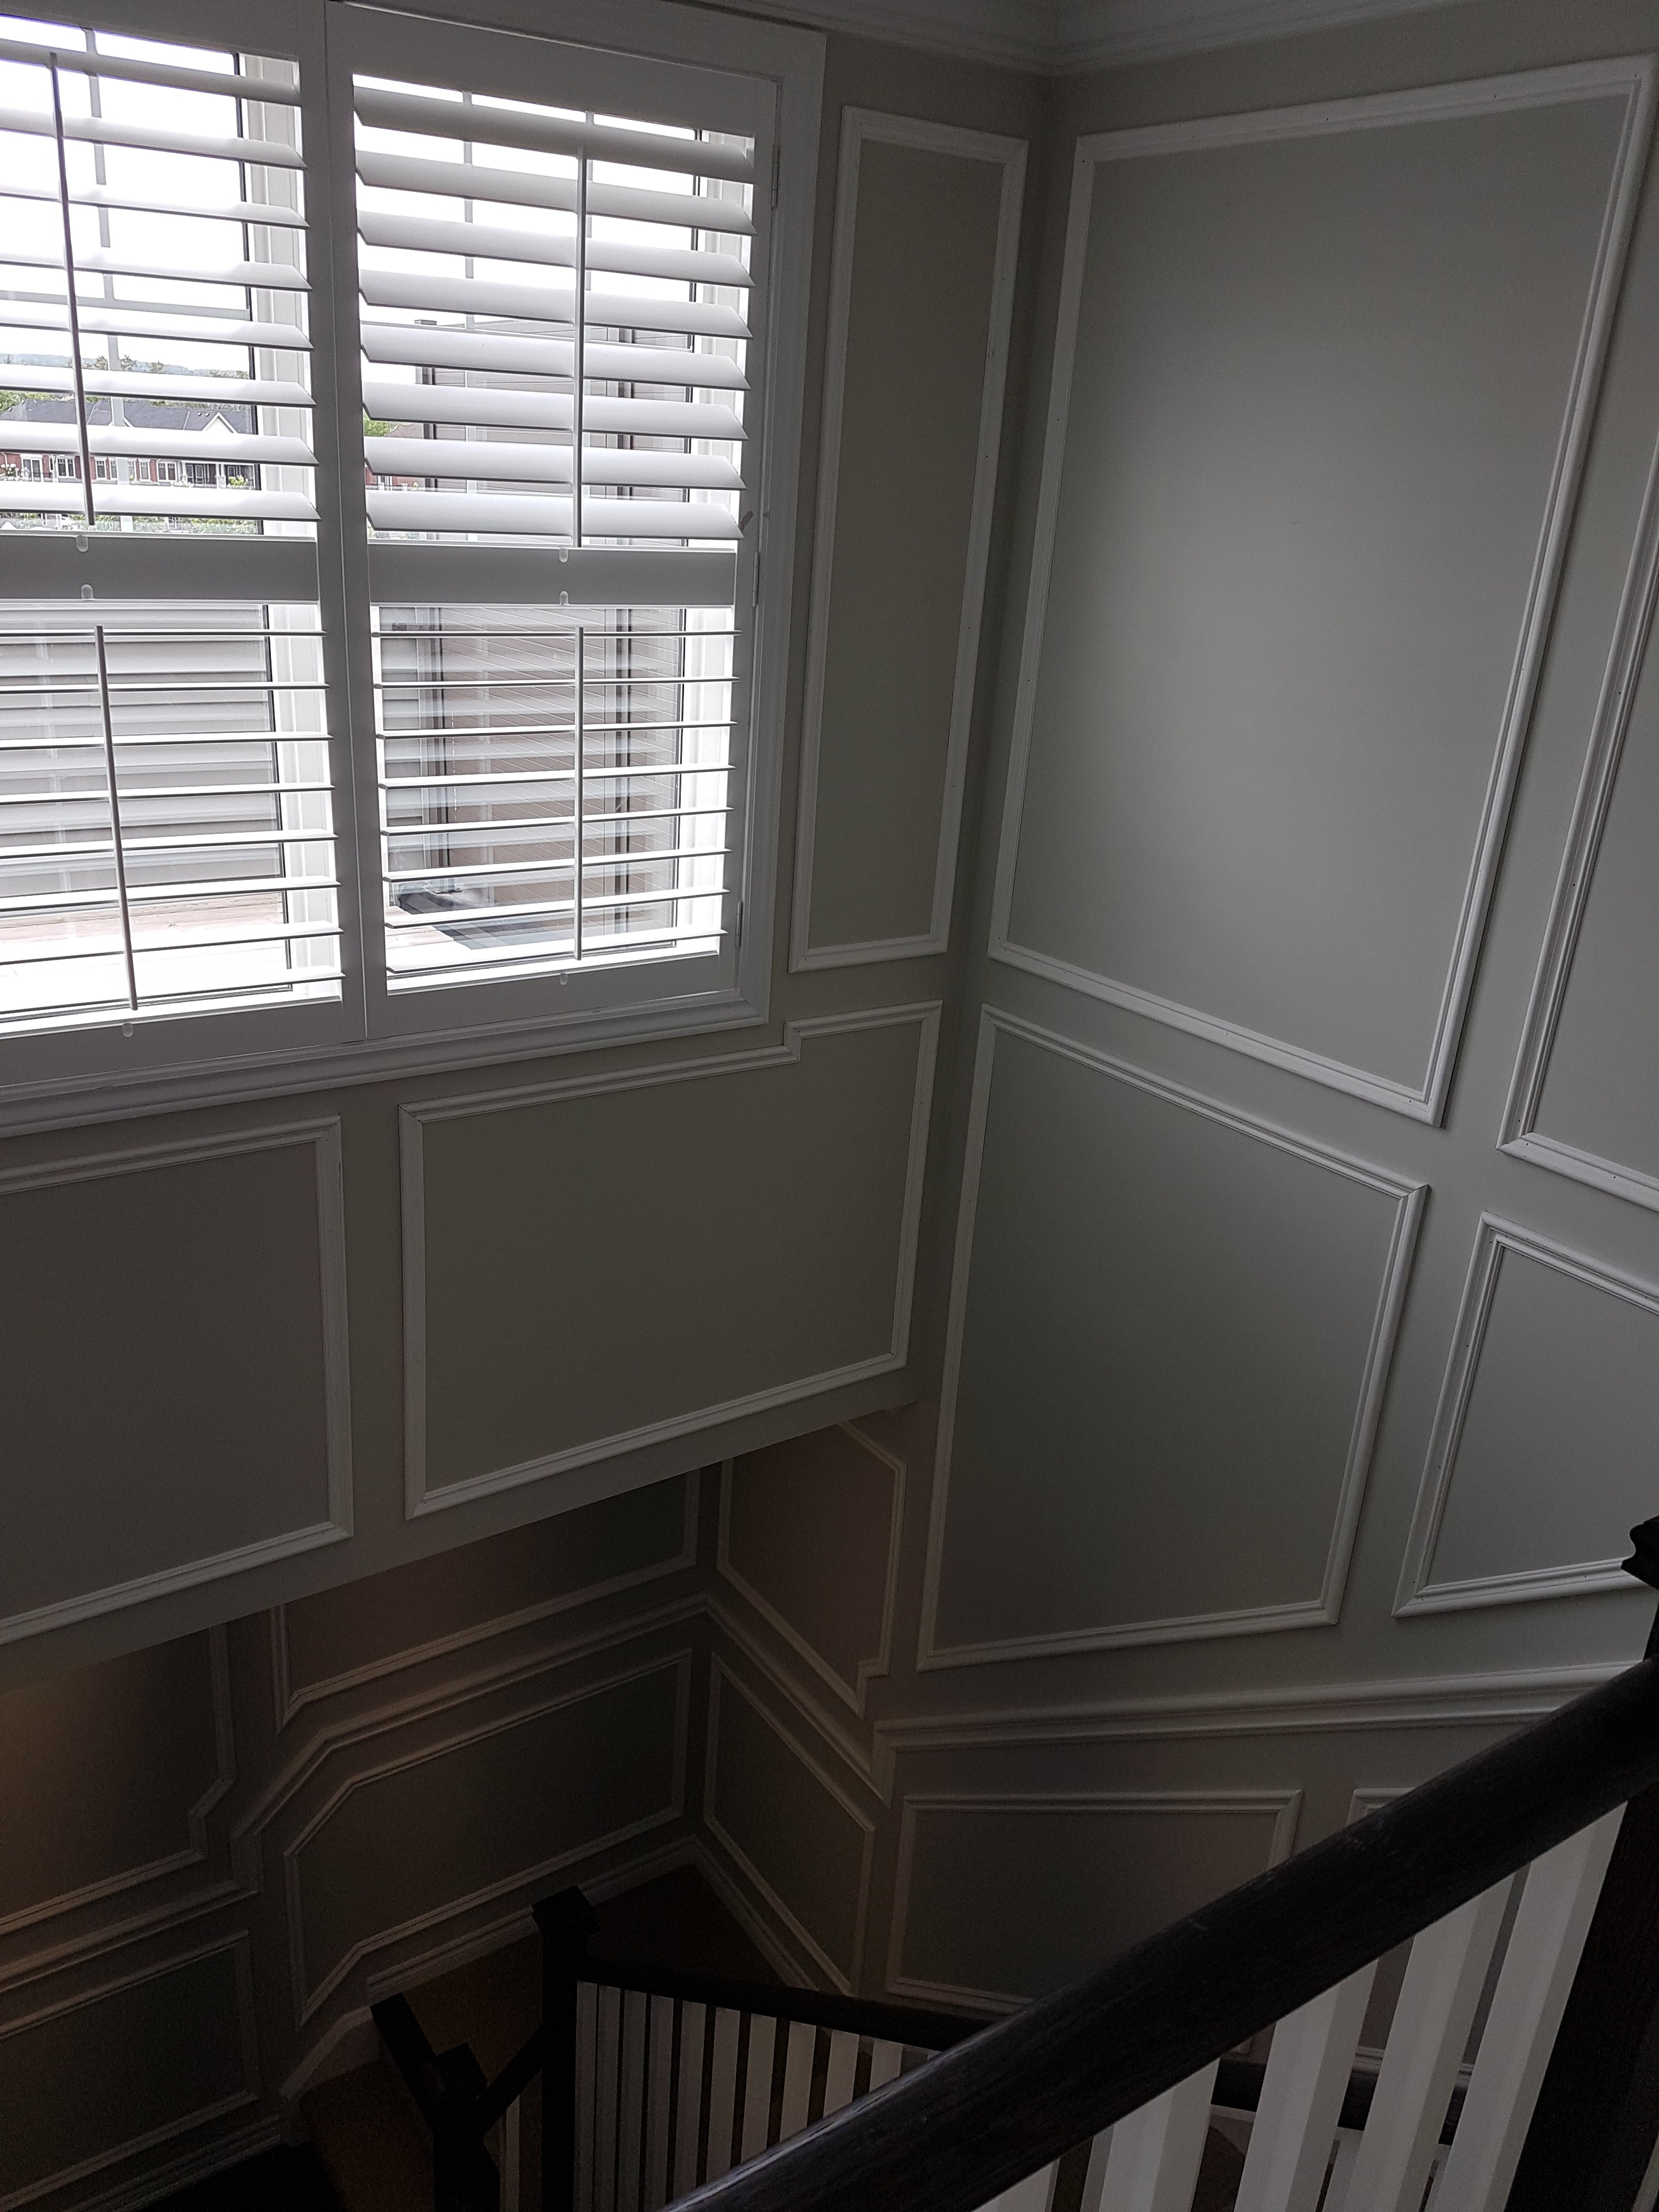 Wainscoting - Near Window and Wall - World Cl Moulding on stucco windows, crown molding windows, bar windows, accessories windows, siding windows, fireplace windows,